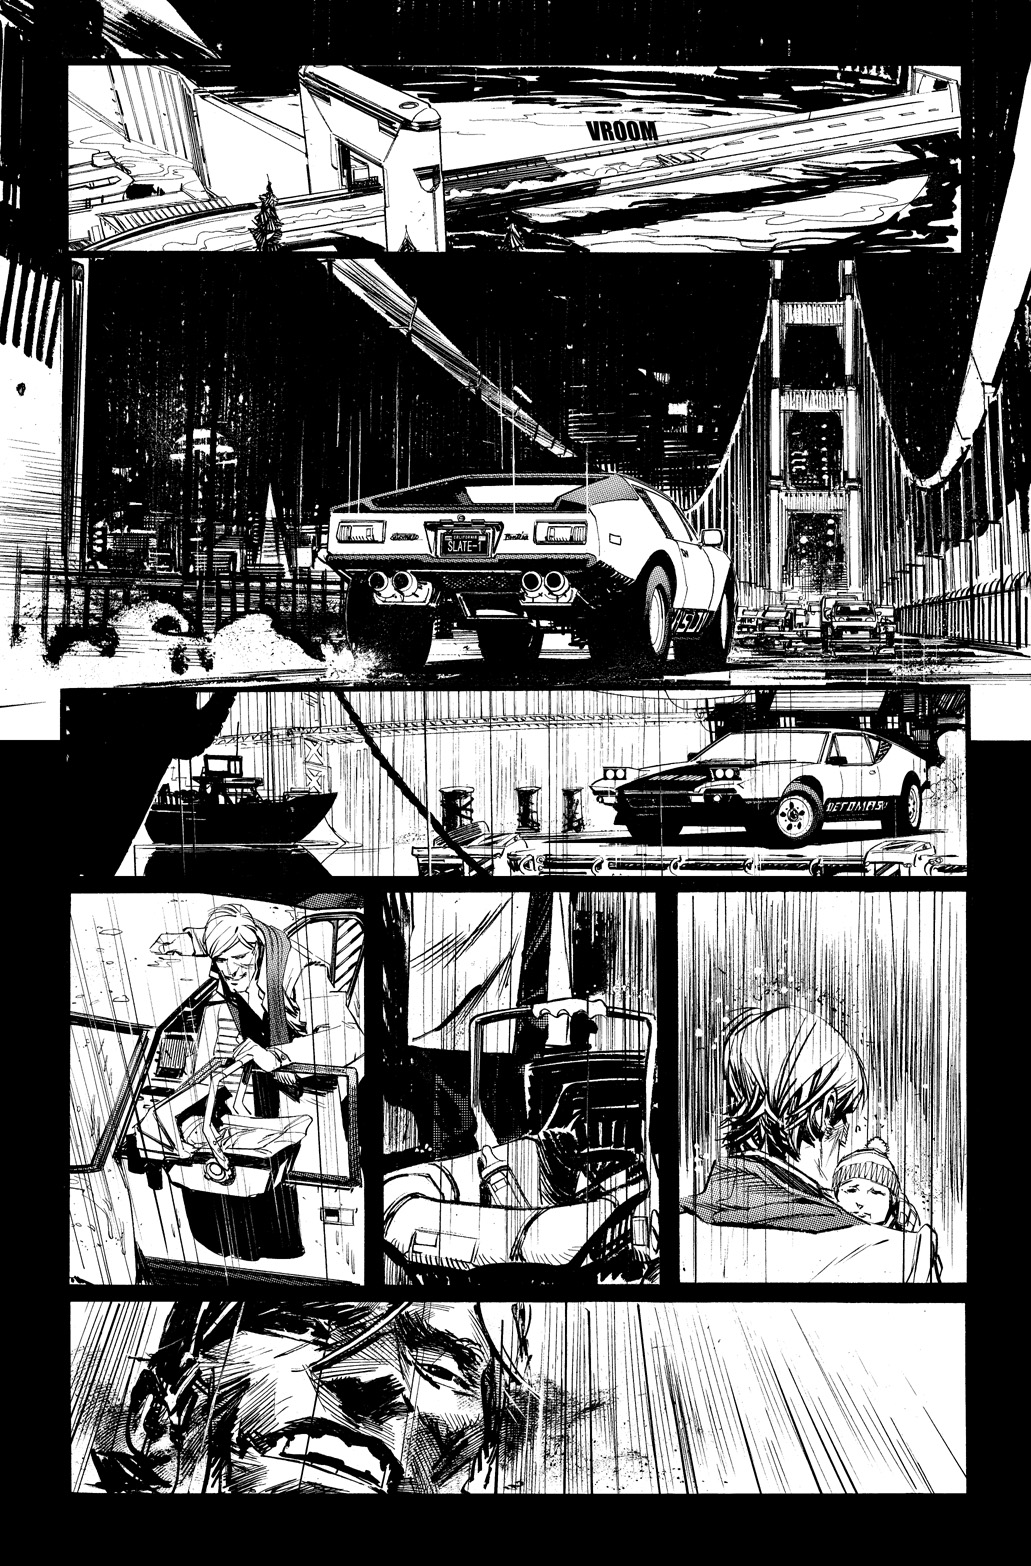 Jeff Smith S Bone And Independent Comic Books Wallpaper Page 3 Of